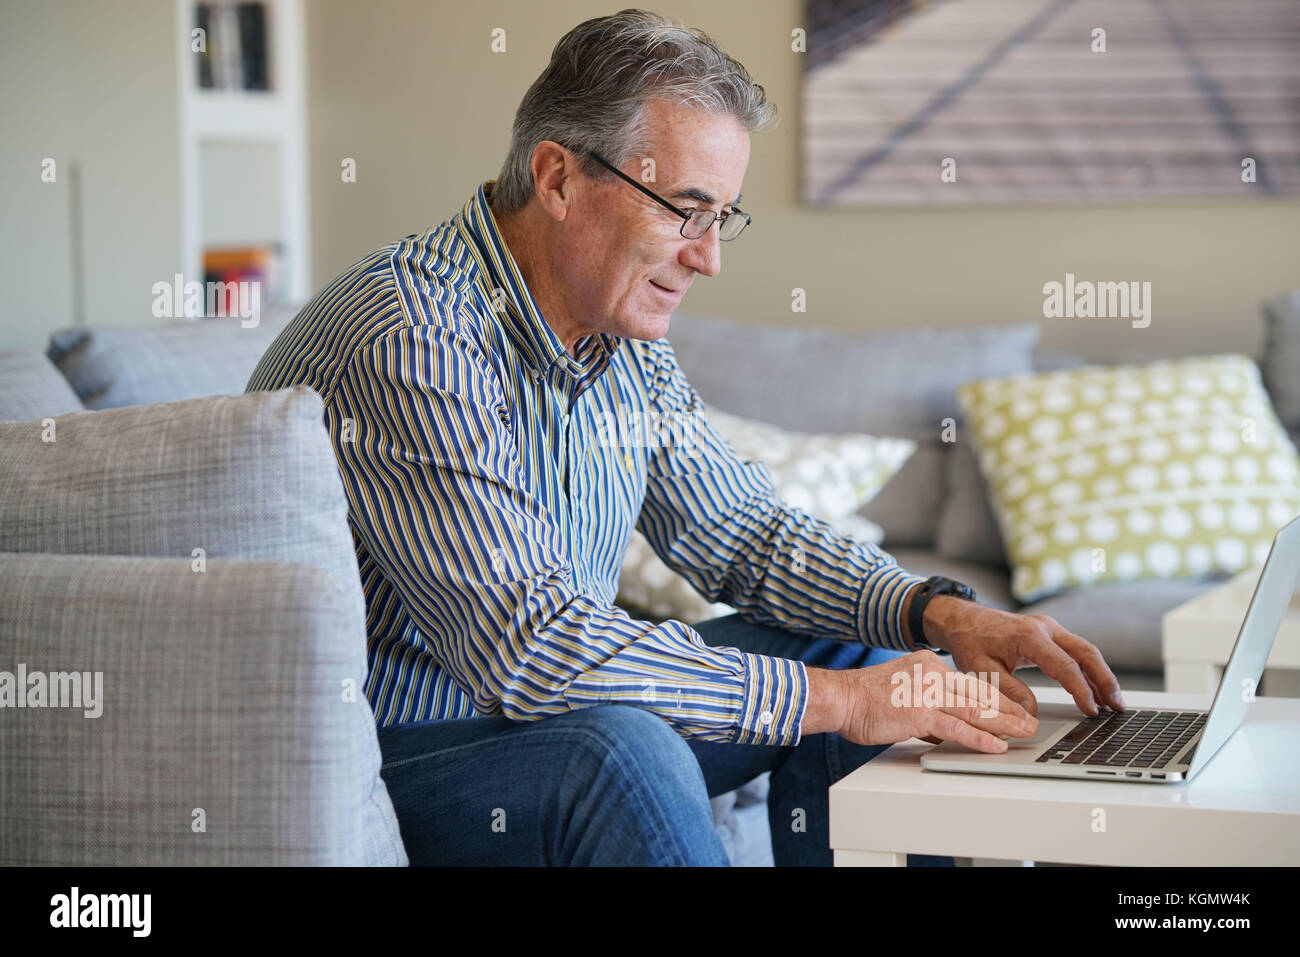 Senior man in living-room using laptop computer Photo Stock